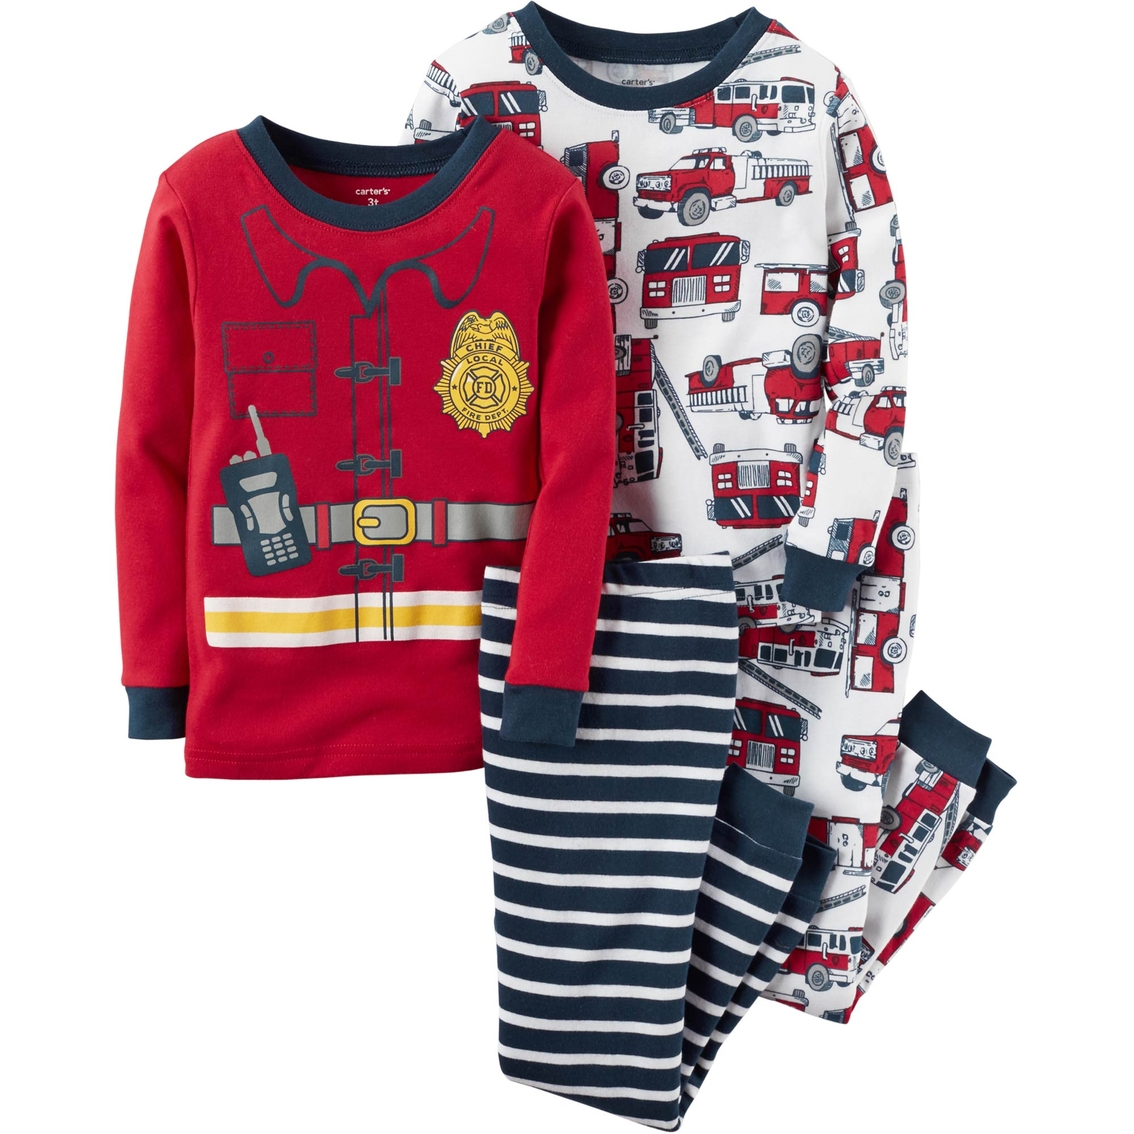 Shop for fireman sam pajamas online at Target. Free shipping on purchases over $35 and save 5% every day with your Target REDcard.